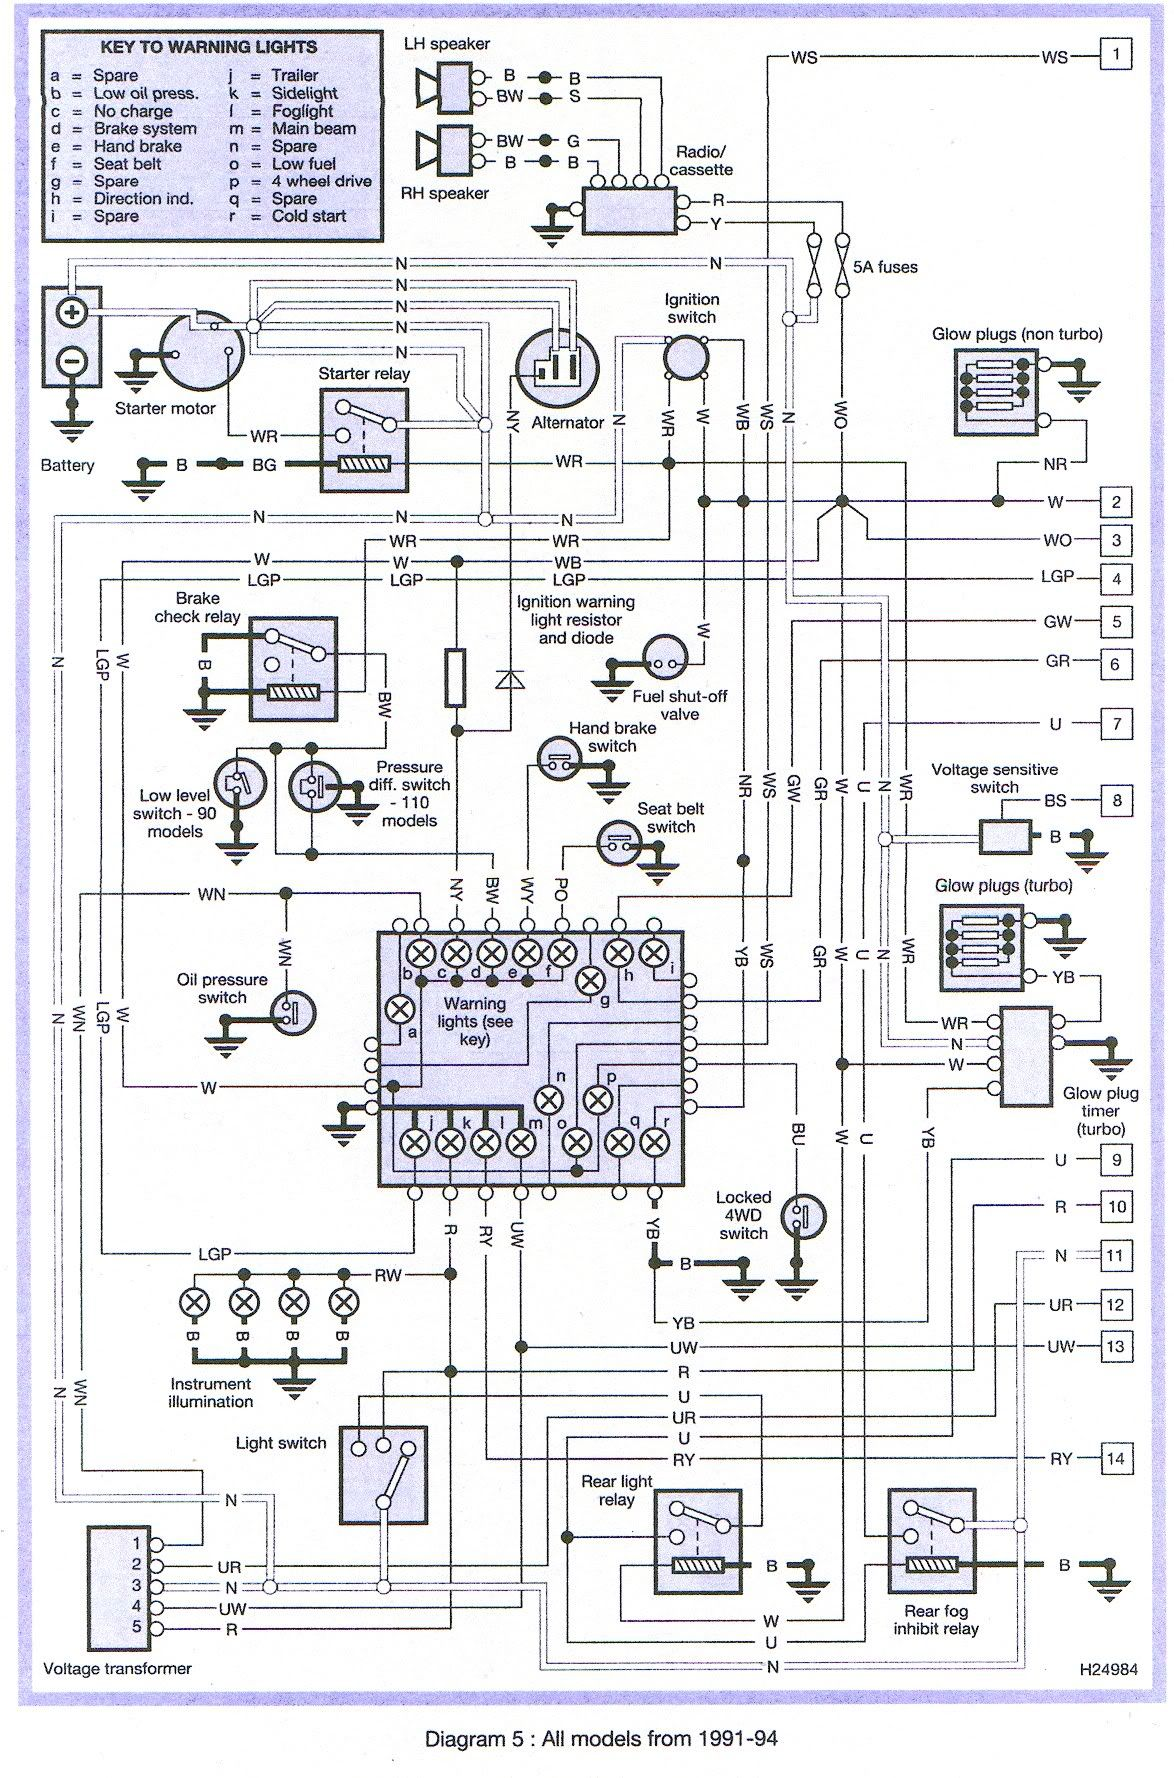 for ge oven wiring diagram jbp26gv3ad wiring diagram centre for ge oven wiring diagram jbp26gv3ad [ 1174 x 1778 Pixel ]